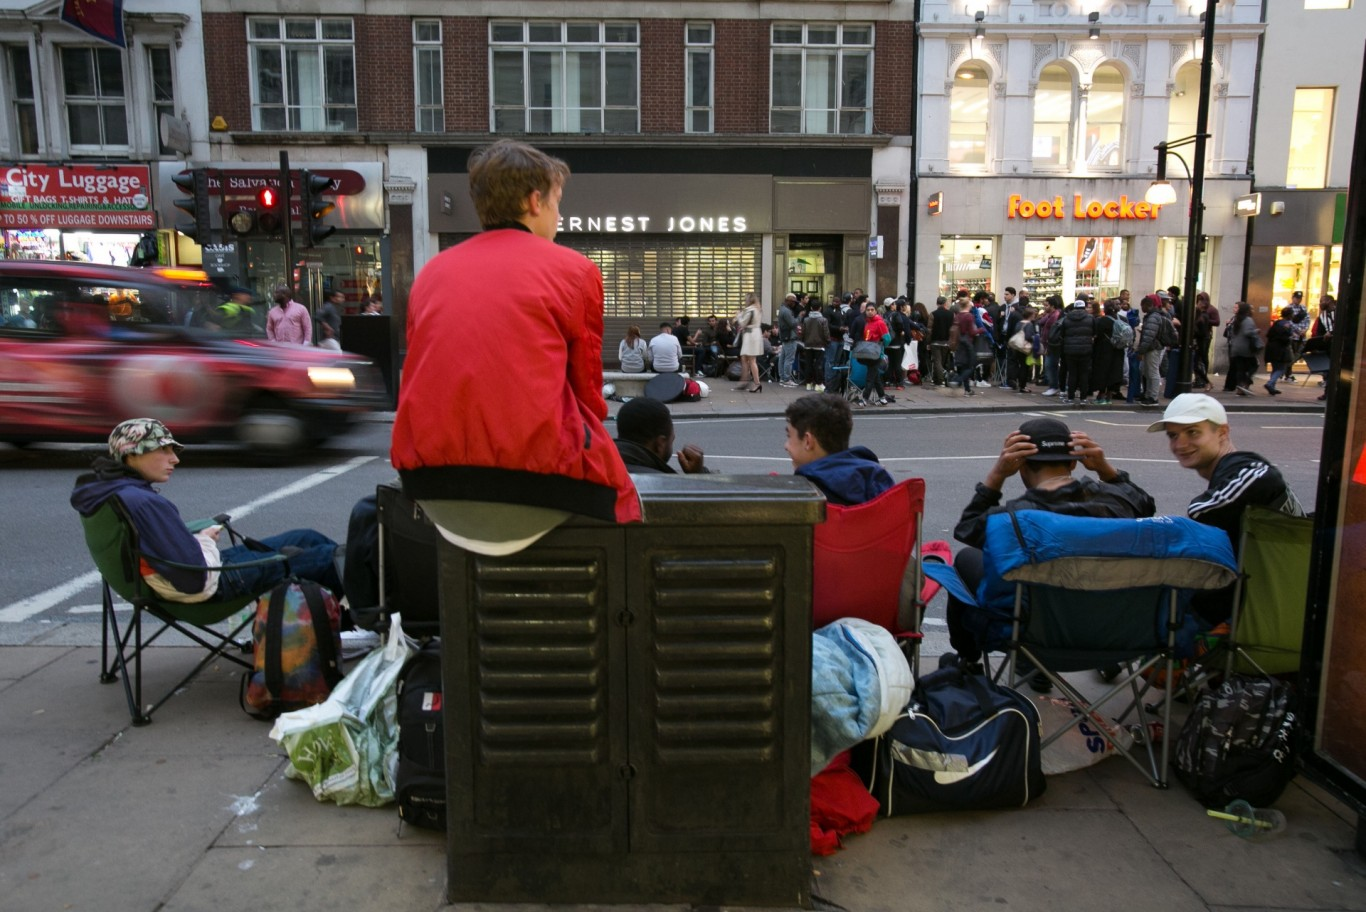 People are camping in Oxford Street for